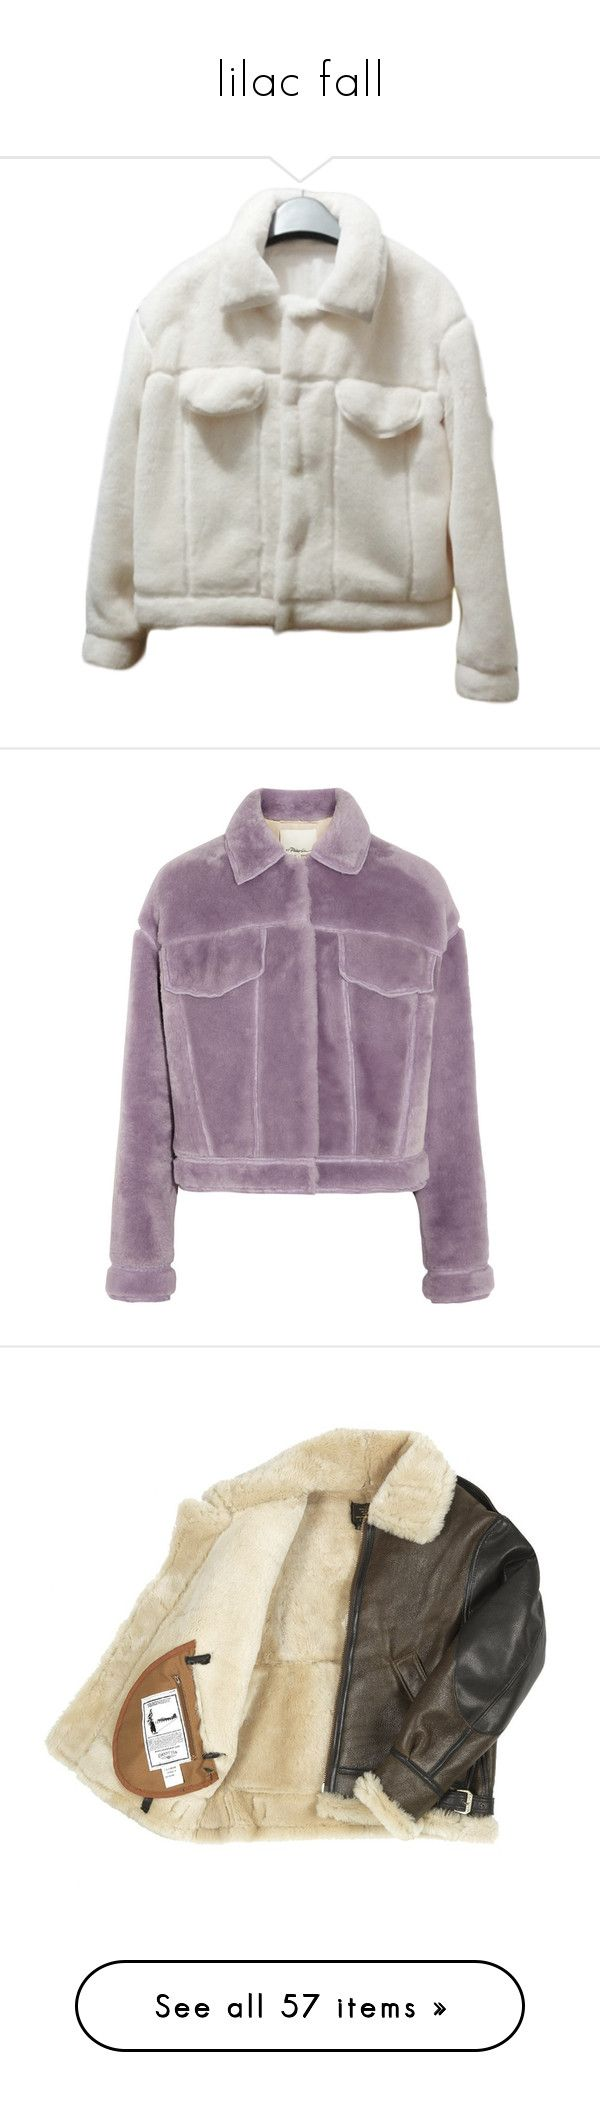 """lilac fall"" by vesleku on Polyvore featuring outerwear, jackets, clothing - outerwear, coats, coats & jackets, white winter jacket, cropped jacket, ivory jacket, purple and lavender jacket"